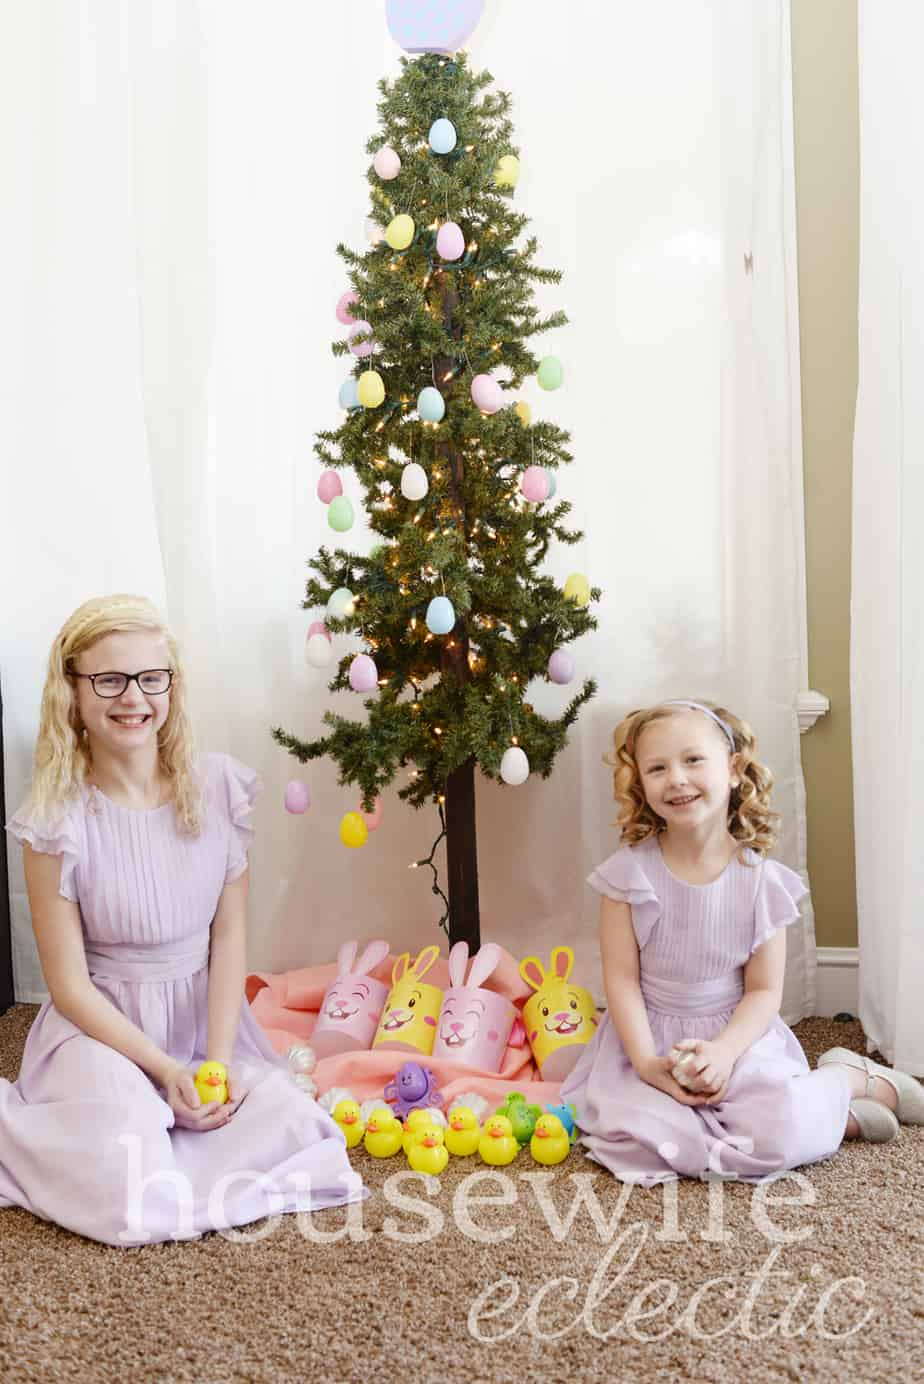 Housewife Eclectic: Easter Tree